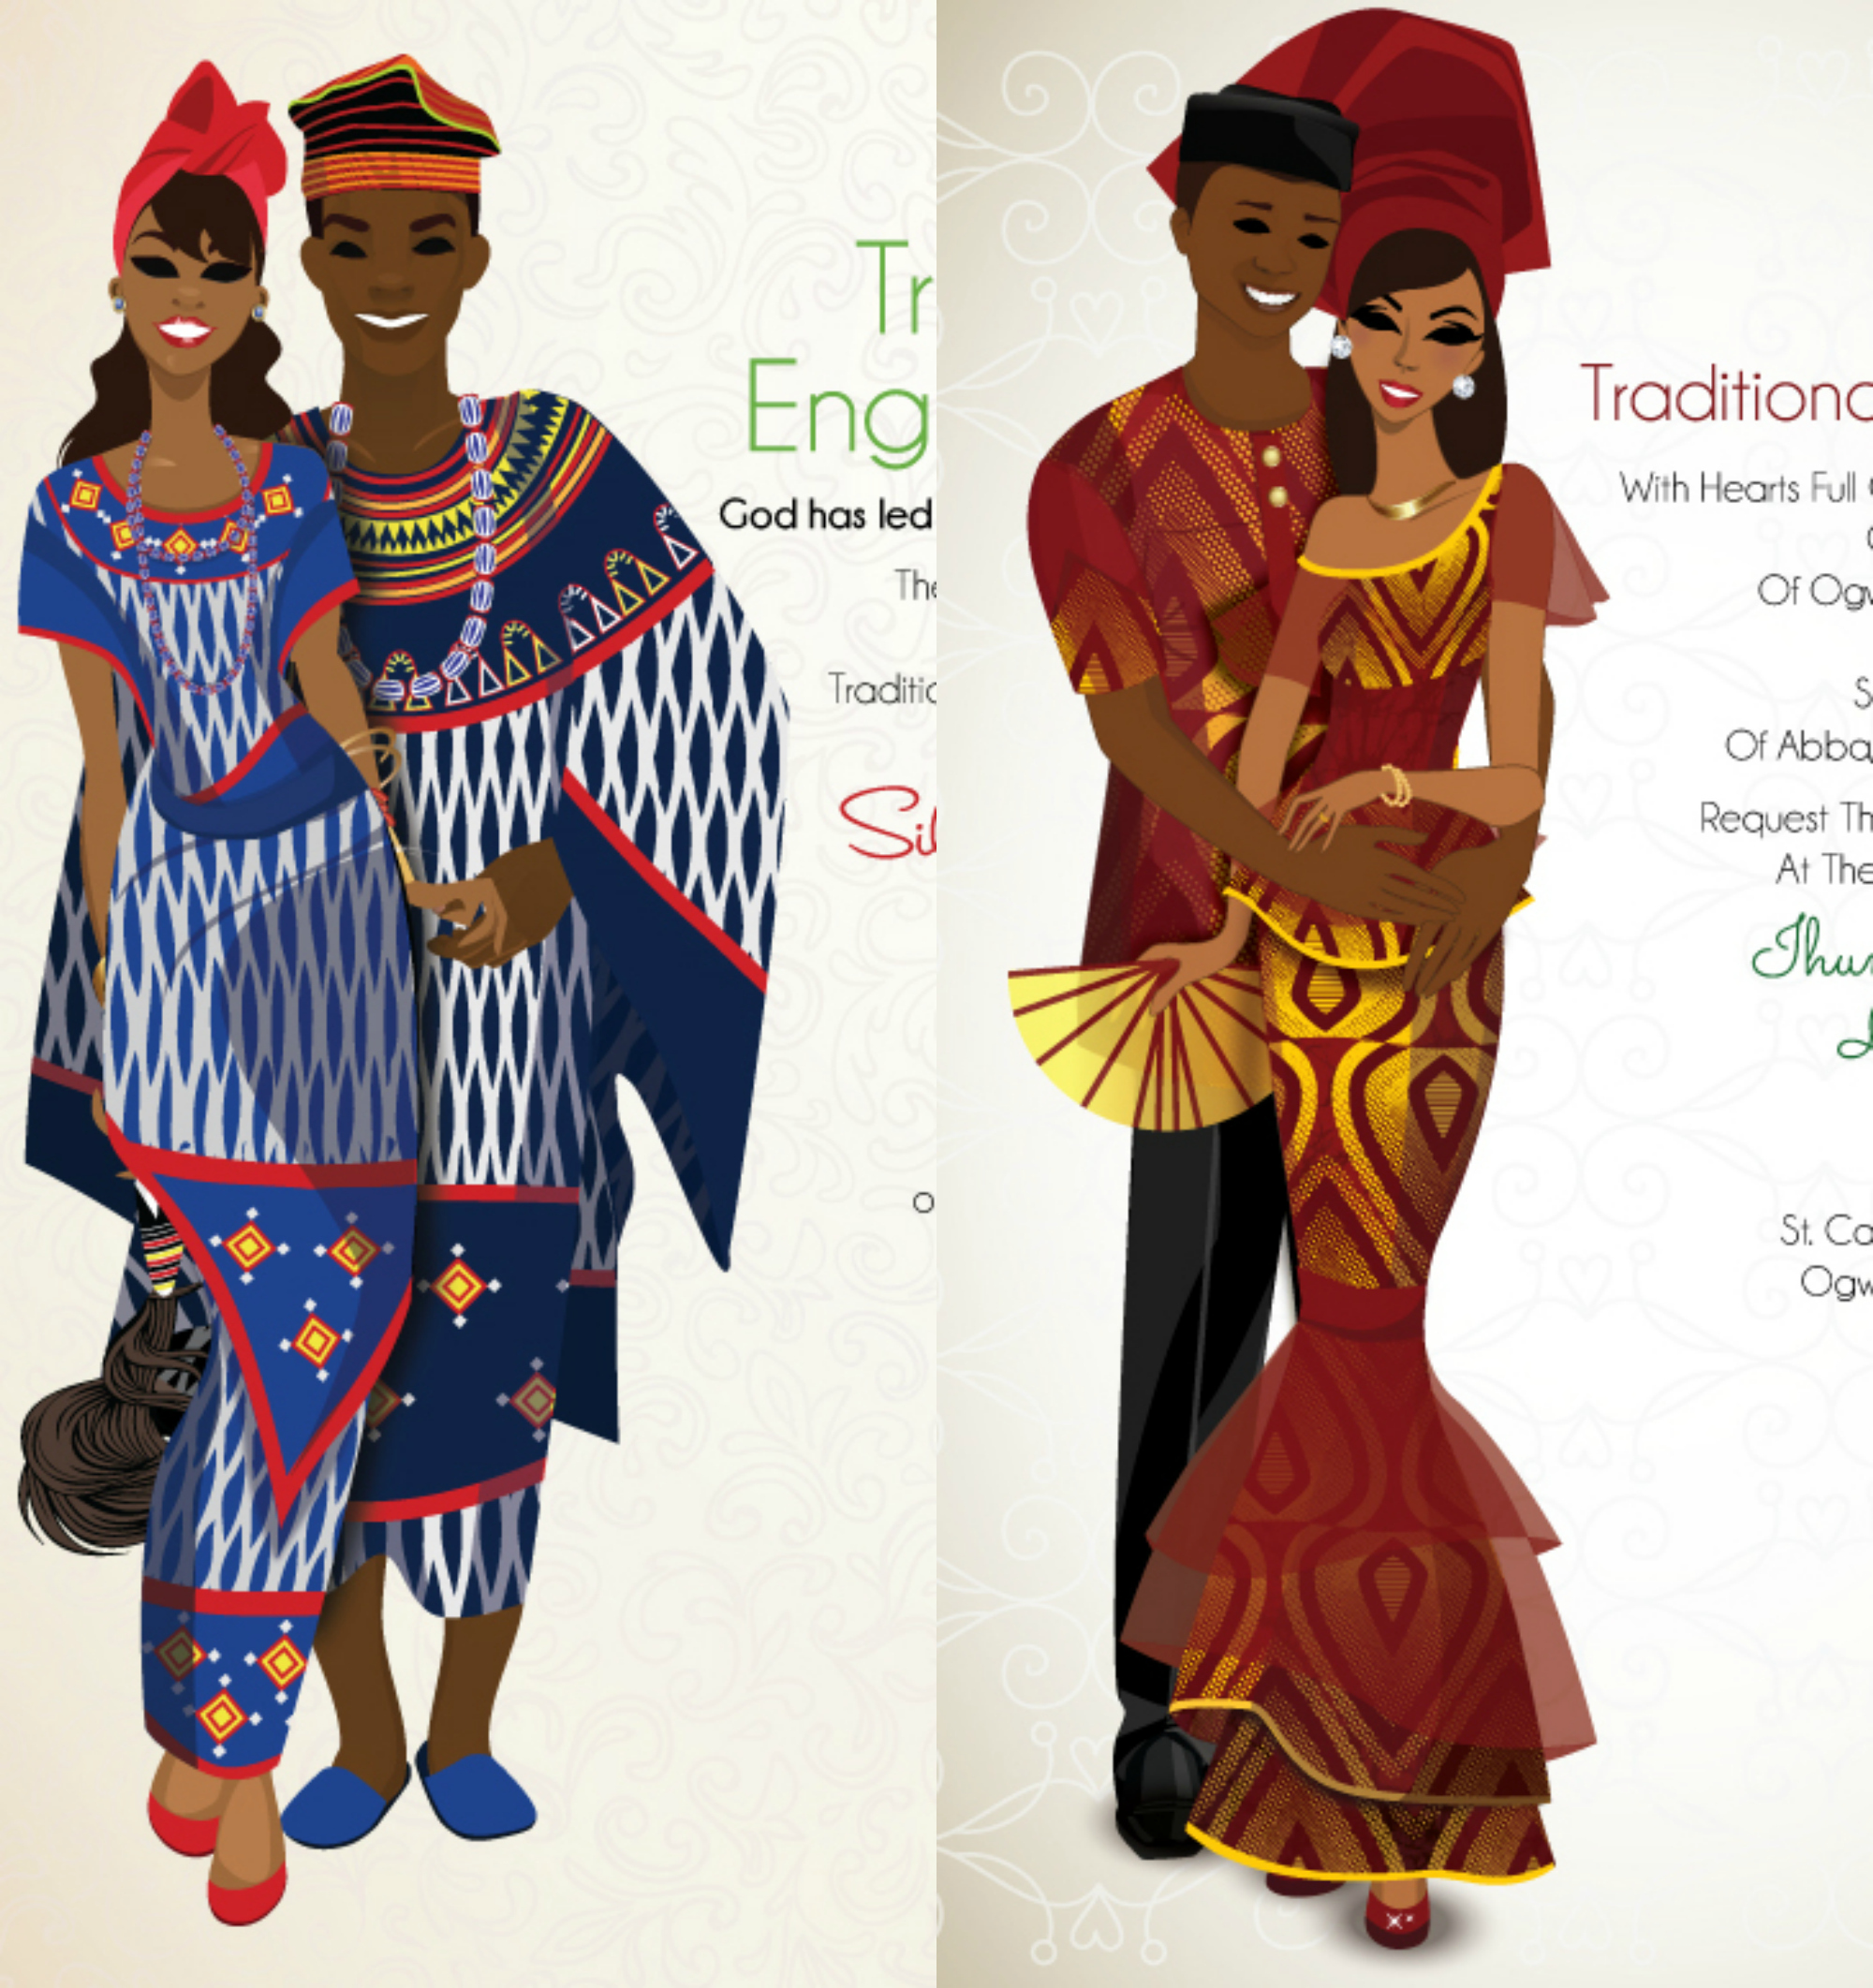 Had To Share: Bibi Invitations Presents African Themed Wedding Invitations